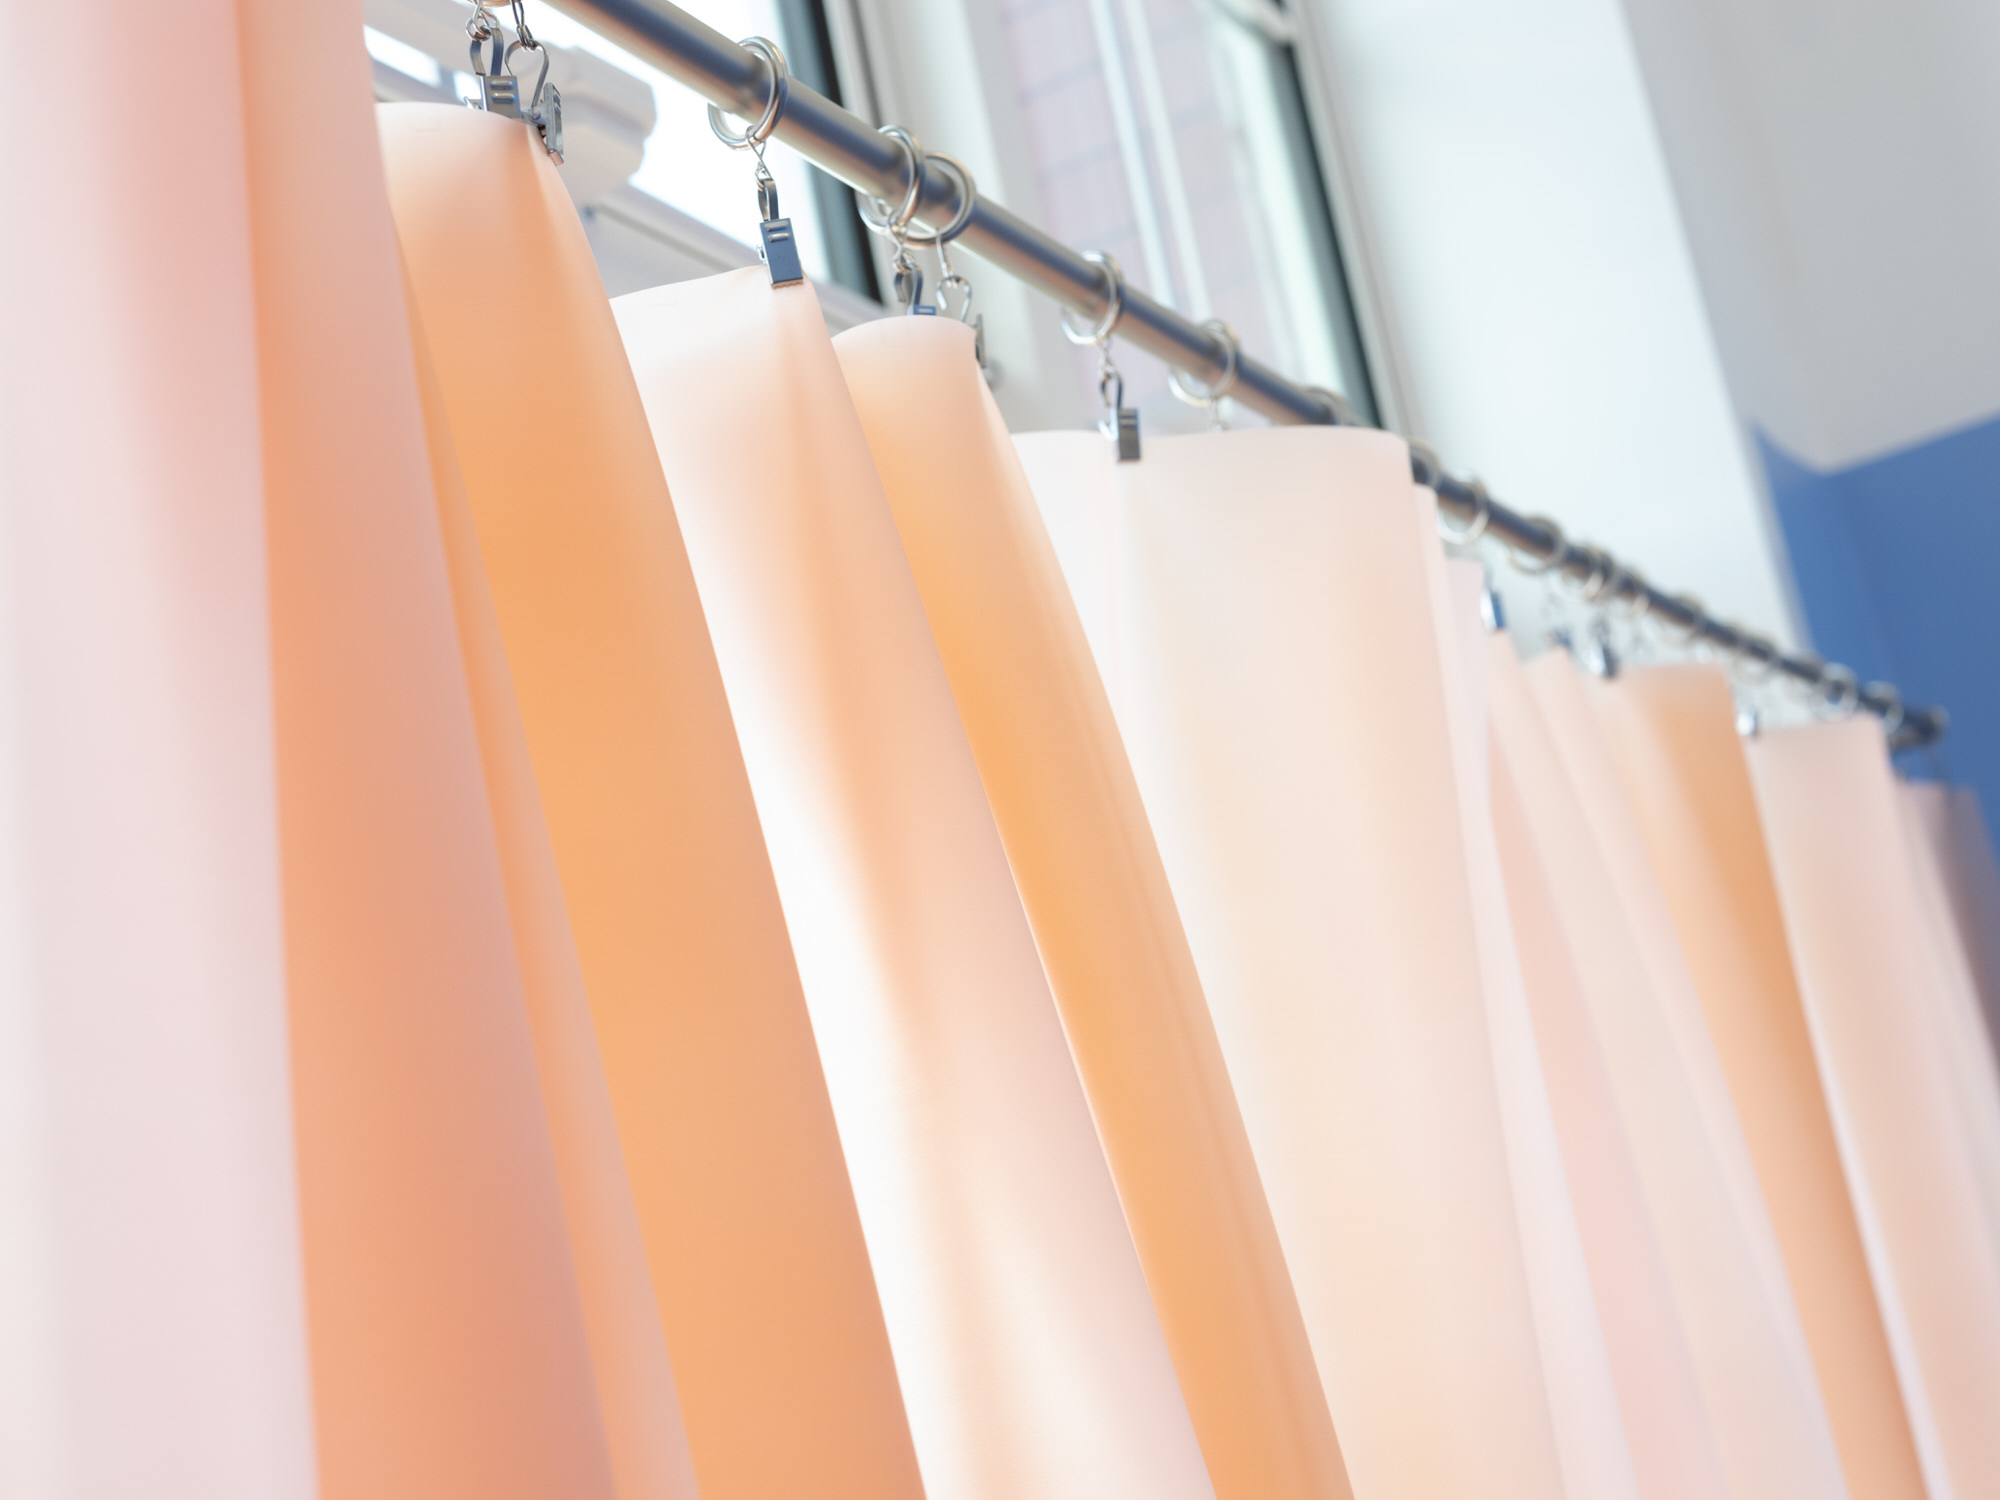 Lucy Colbert | Pink curtain on a metal rail | Image by McAteer Photo